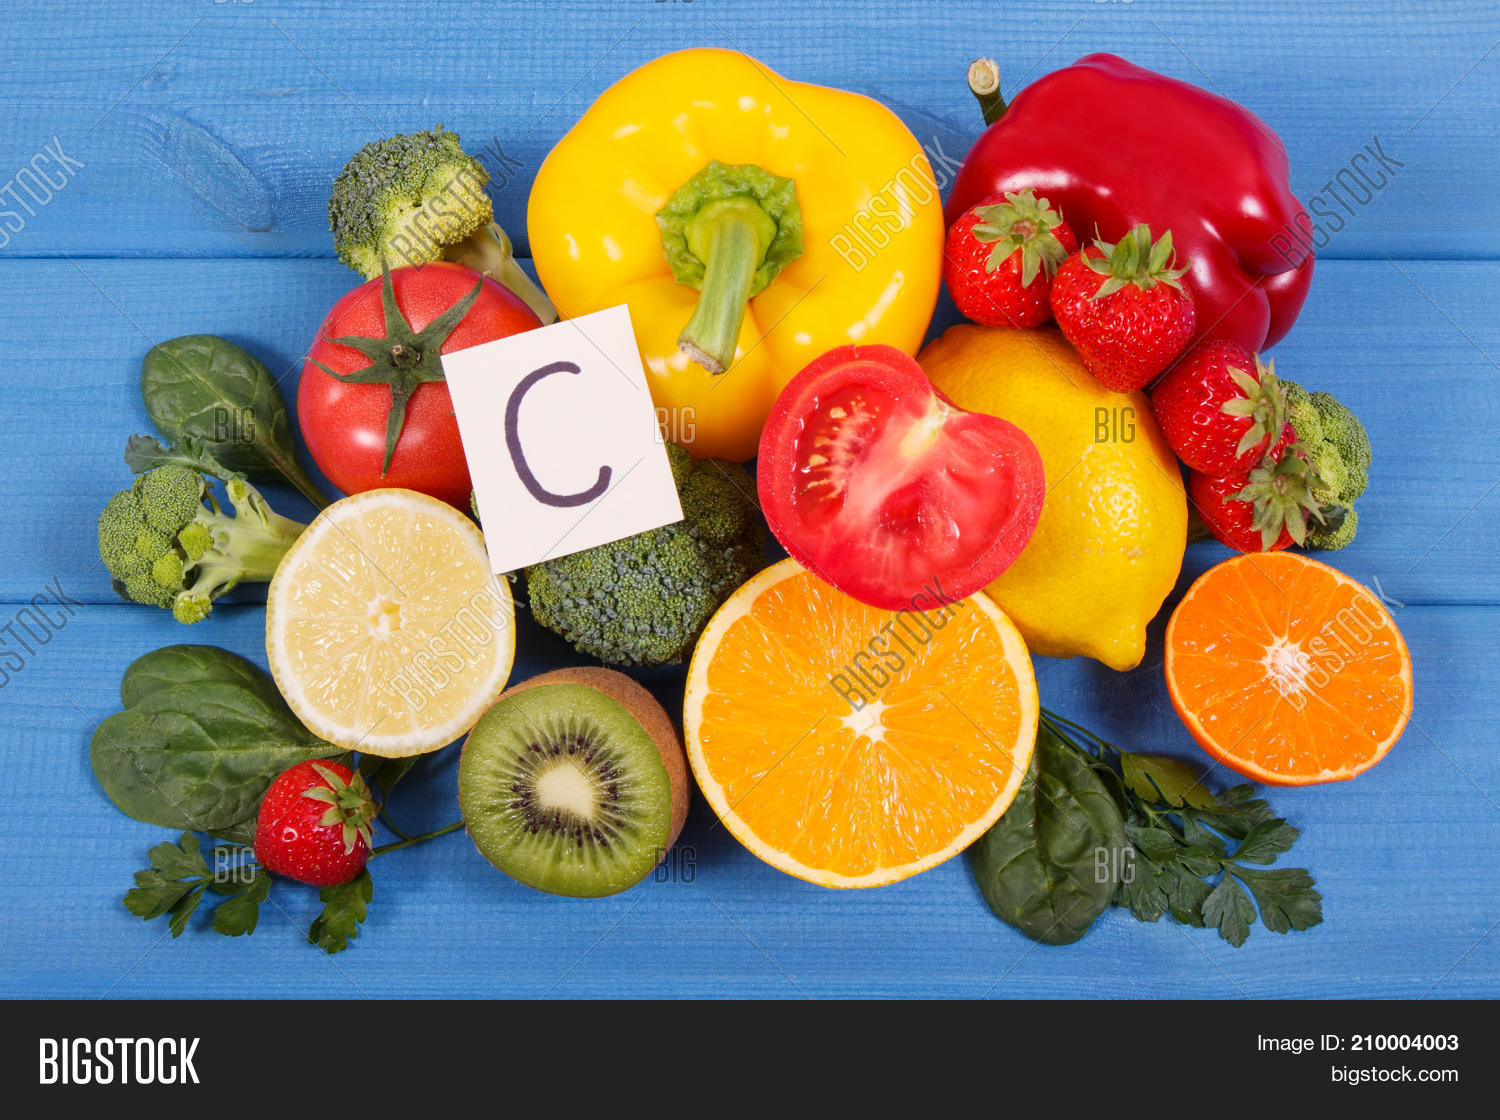 Fruits vegetables sources vitamin c image photo bigstock fruits and vegetables as sources vitamin c dietary fiber and minerals strengthening immunity and workwithnaturefo